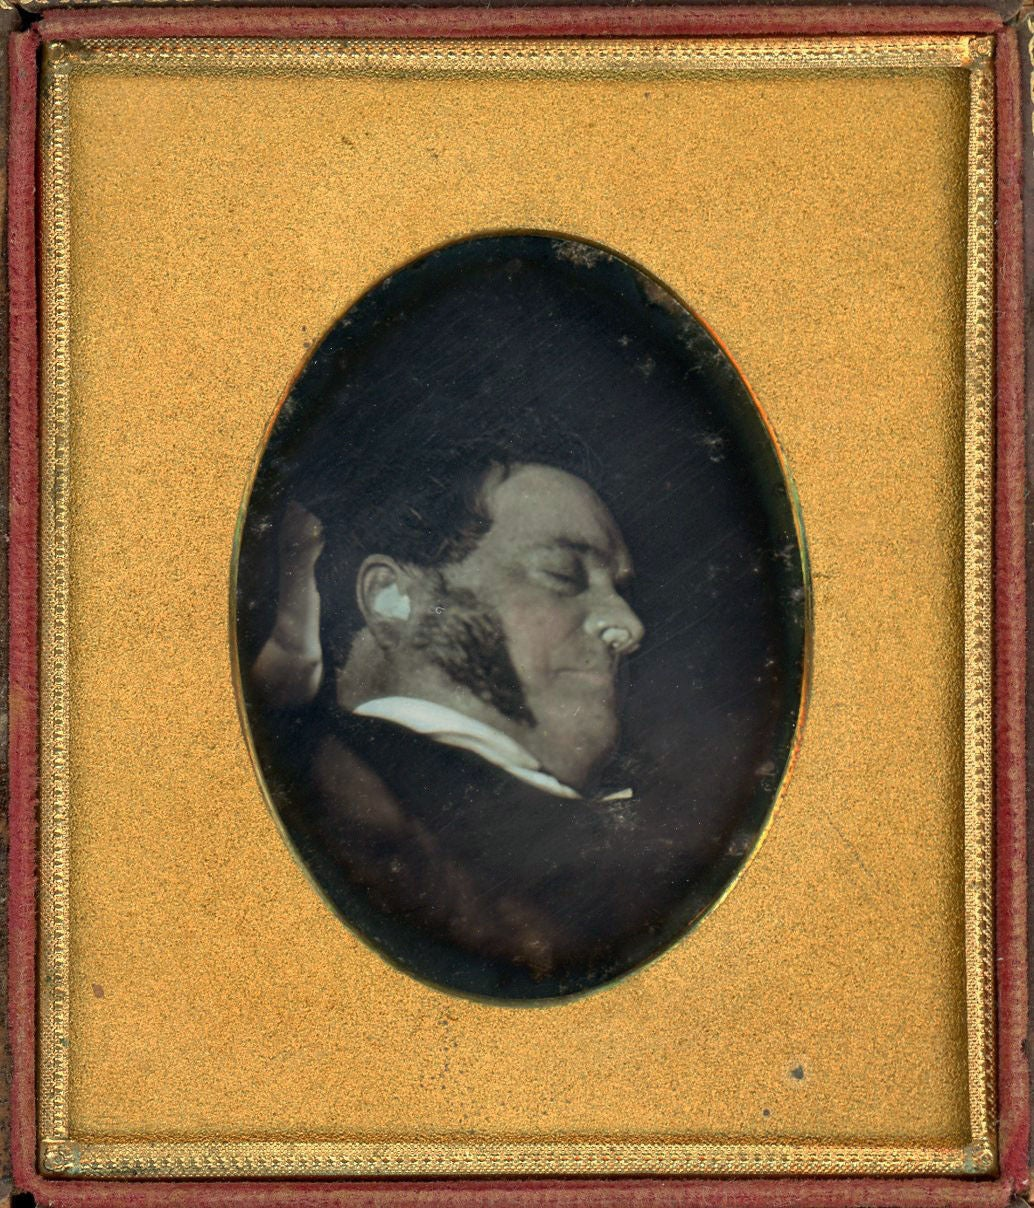 Image of post mortem daguerreotype of a man with ear and nose plugs